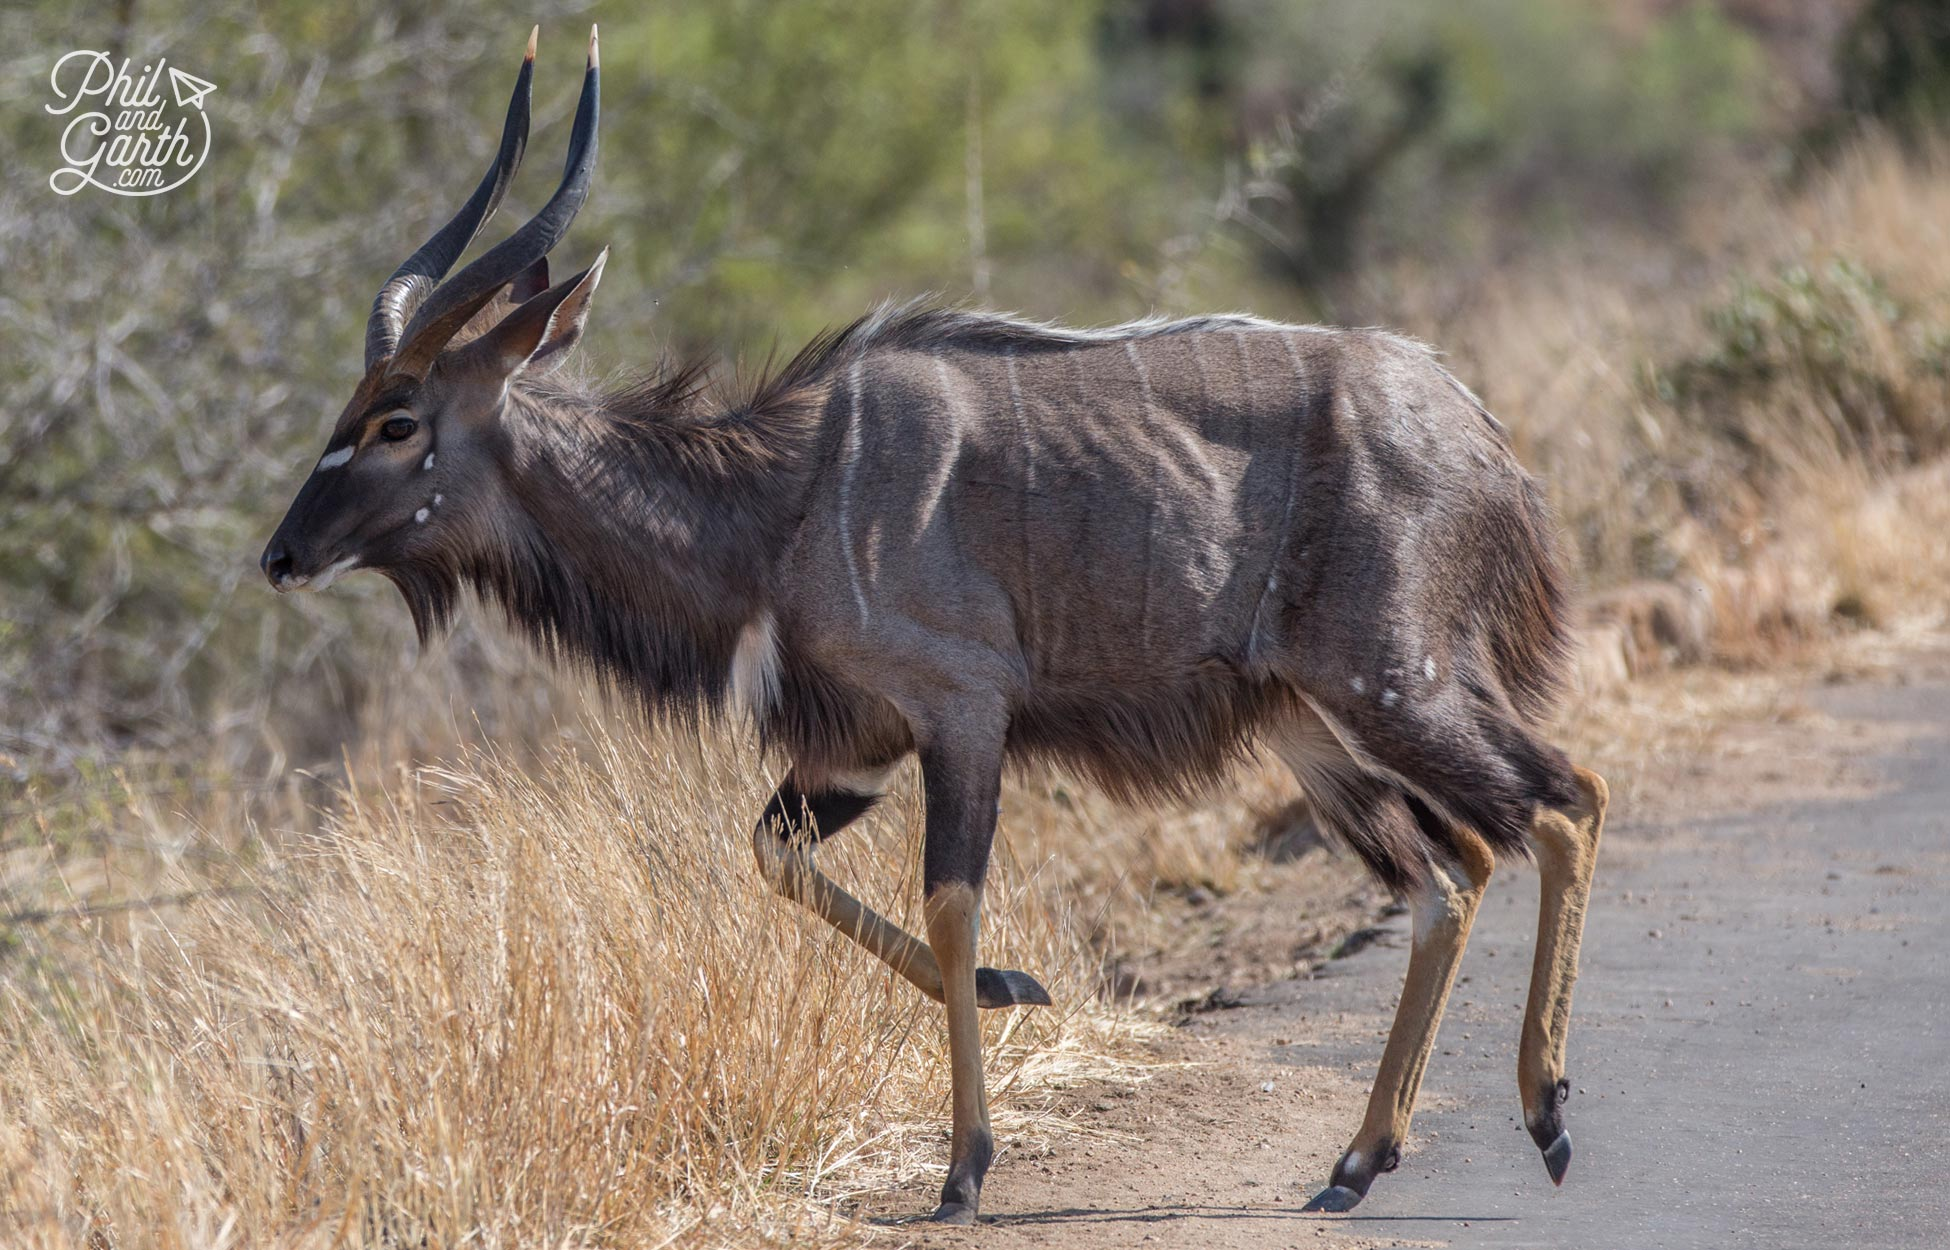 This handsome chap is a Nyala